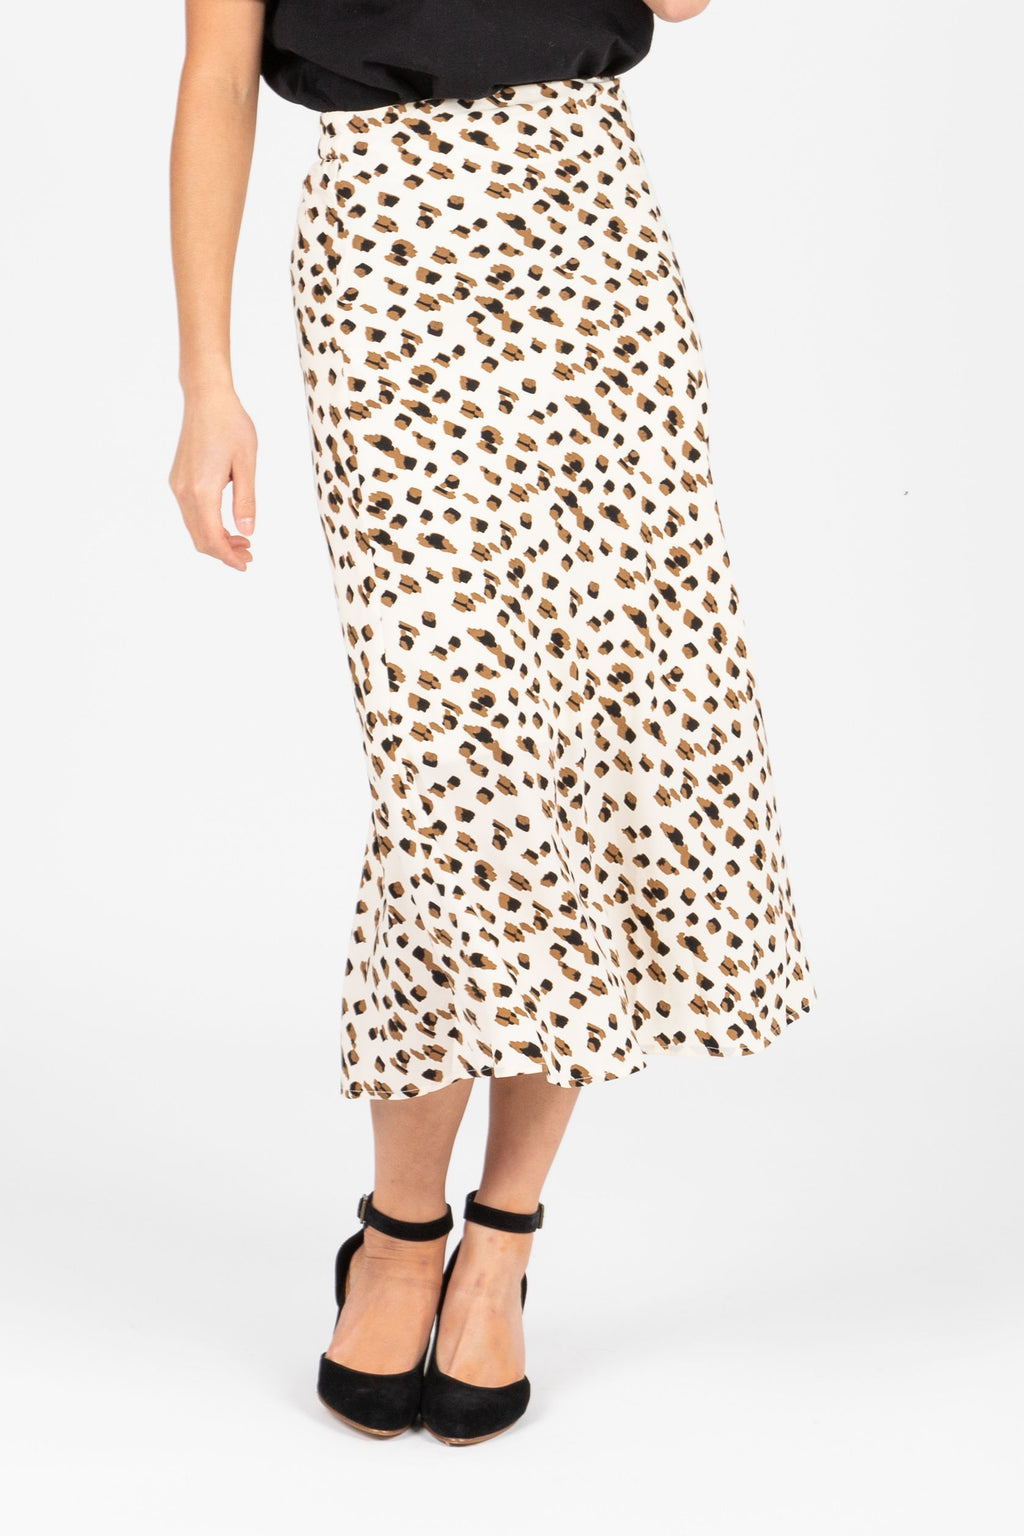 The Nana Patterned Midi Slip Skirt in Cream, studio shoot; front view